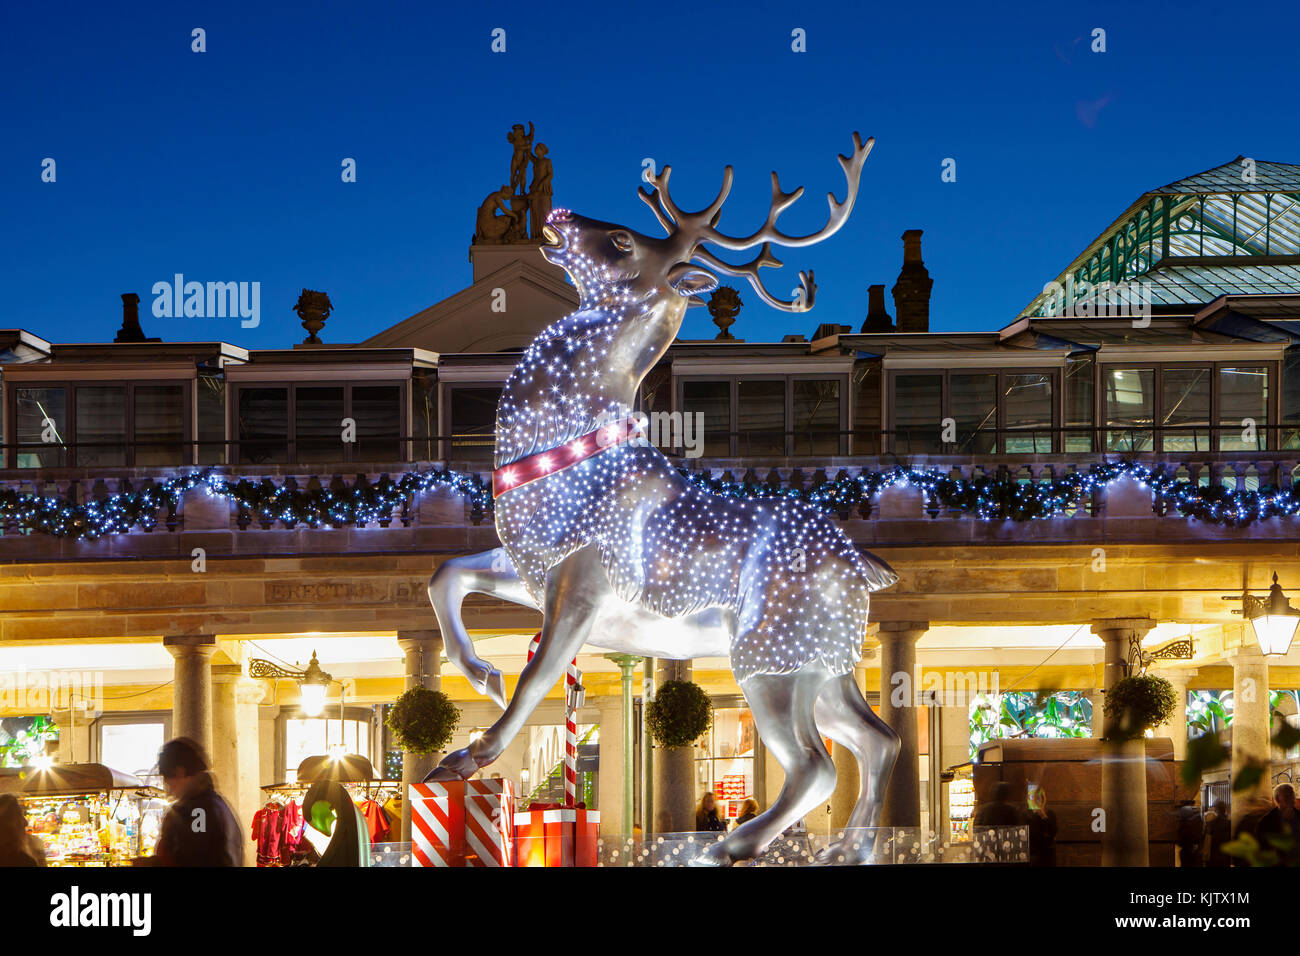 LONDON, UK - November 24th, 2017: Reindeer decoration  in Covent Garden; seasonal lights are being displayed over - Stock Image